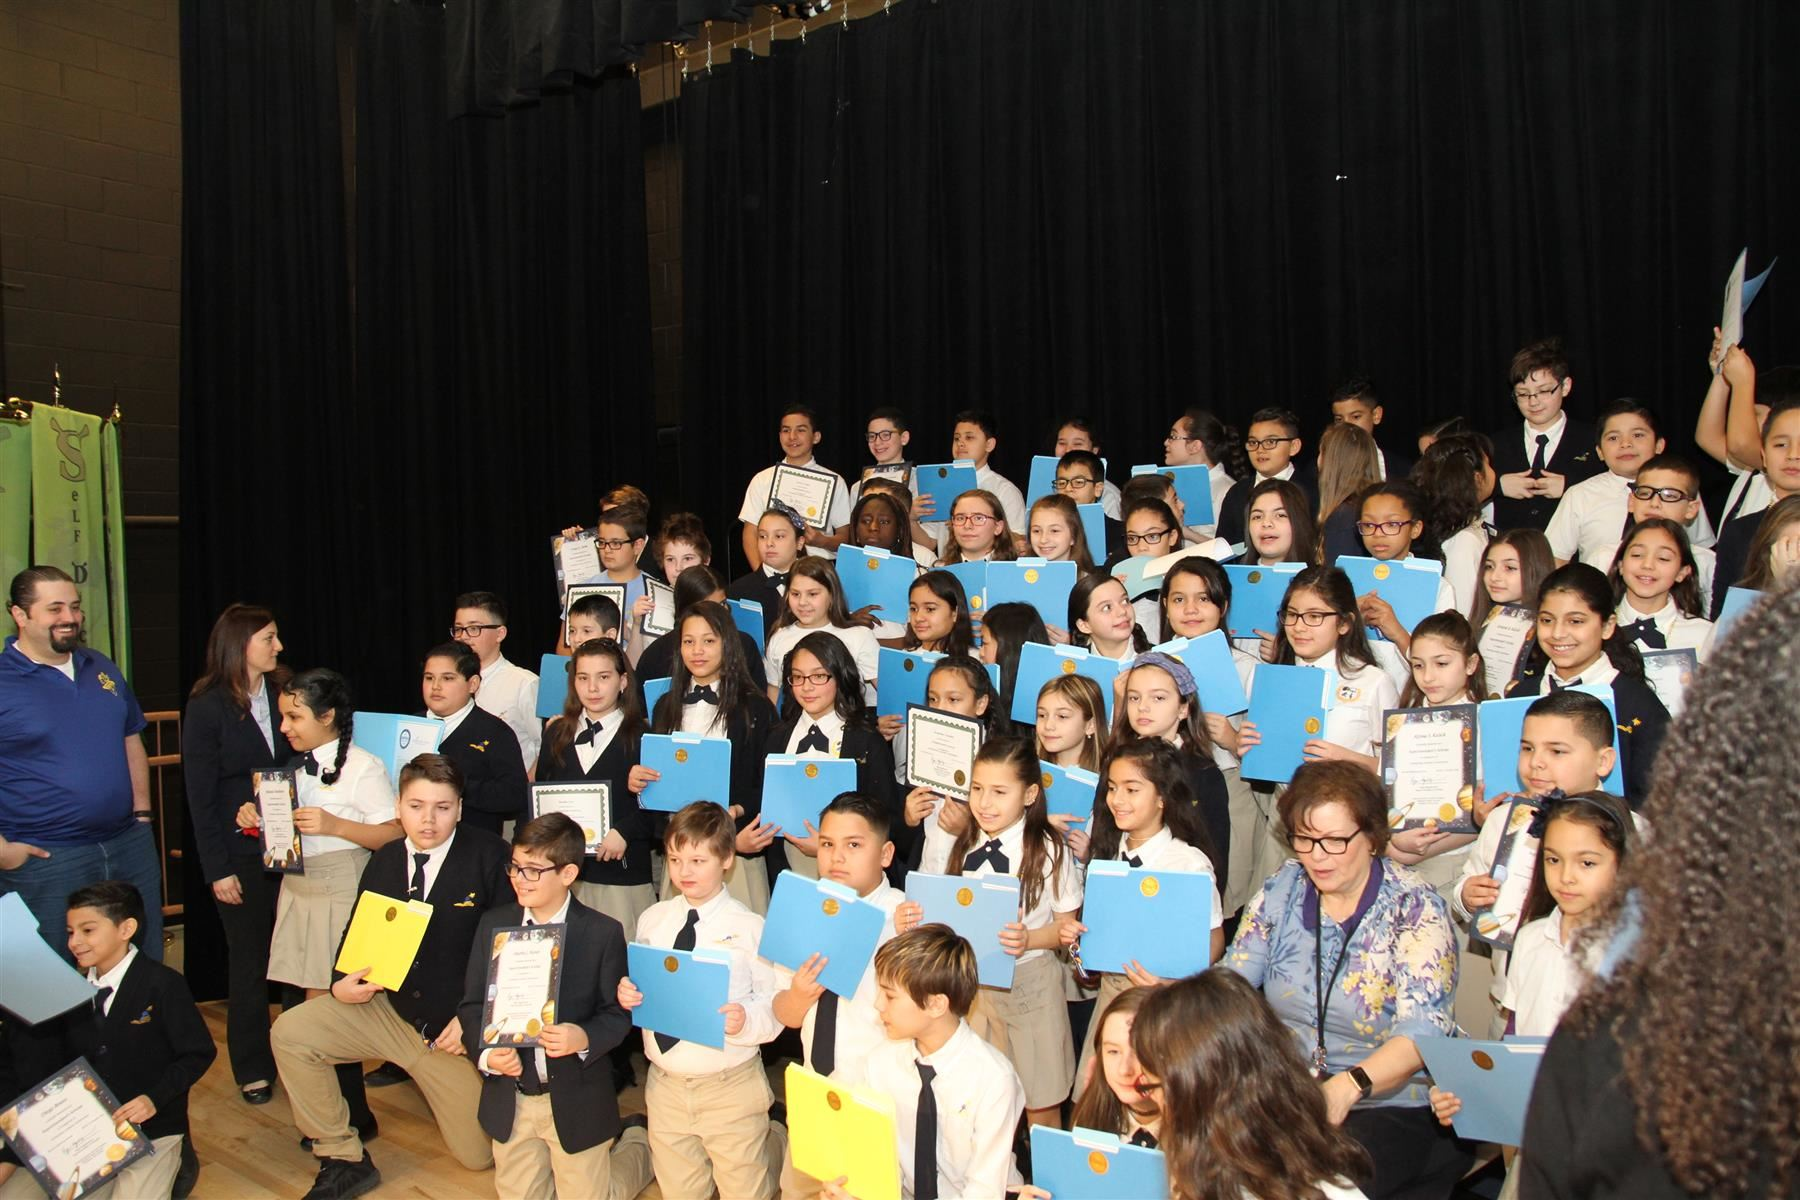 Honor Roll Ceremony @ Victor Mravlag